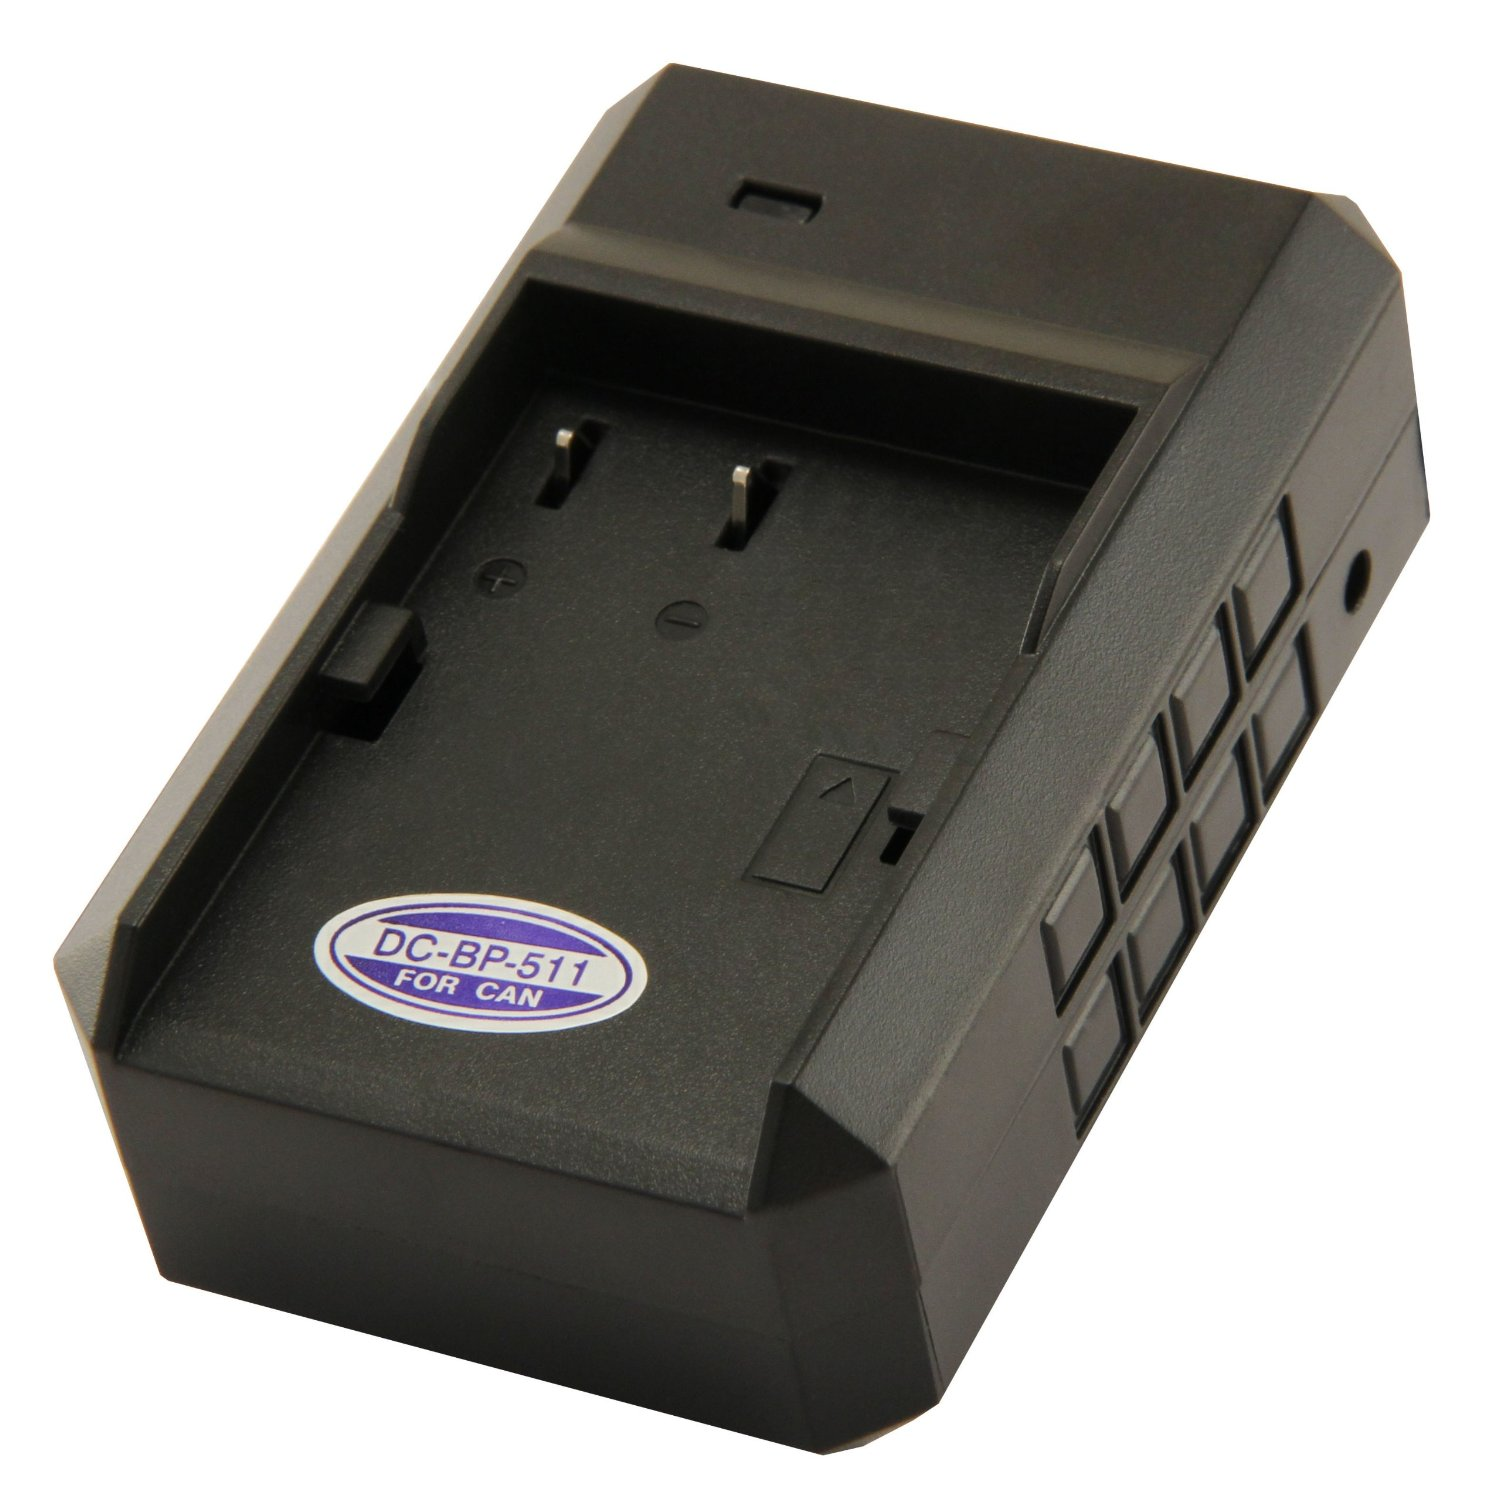 STK CB-5L Canon BP-511 BP-511A Battery Charger - for Canon EOS-5D, Canon EOS-40D, Canon EOS-50D, Canon EOS-20D, Canon EOS-30D, Canon EOS-1D, Canon EOS-10D, Canon EOS-Digital Rebel, Canon EOS-D60, Canon EOS-300D, Canon EOS-D30, Canon EOS Kiss, Canon Powershot G1, Canon Powershot Pro1, Canon